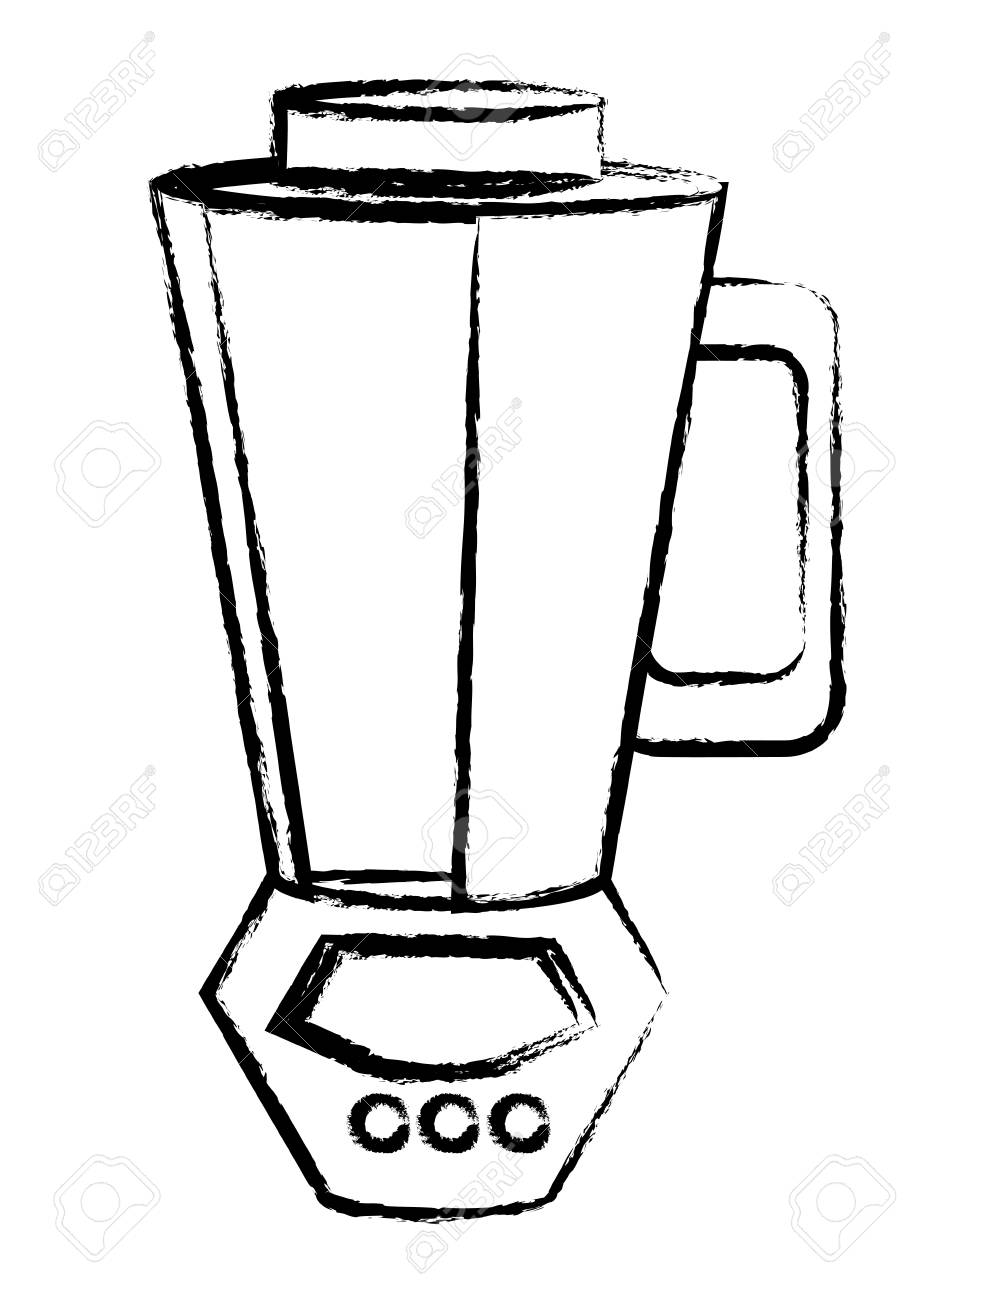 A Sketch Of A Blender Over White Background Vector Illustration Royalty Free Cliparts Vectors And Stock Illustration Image 97282958